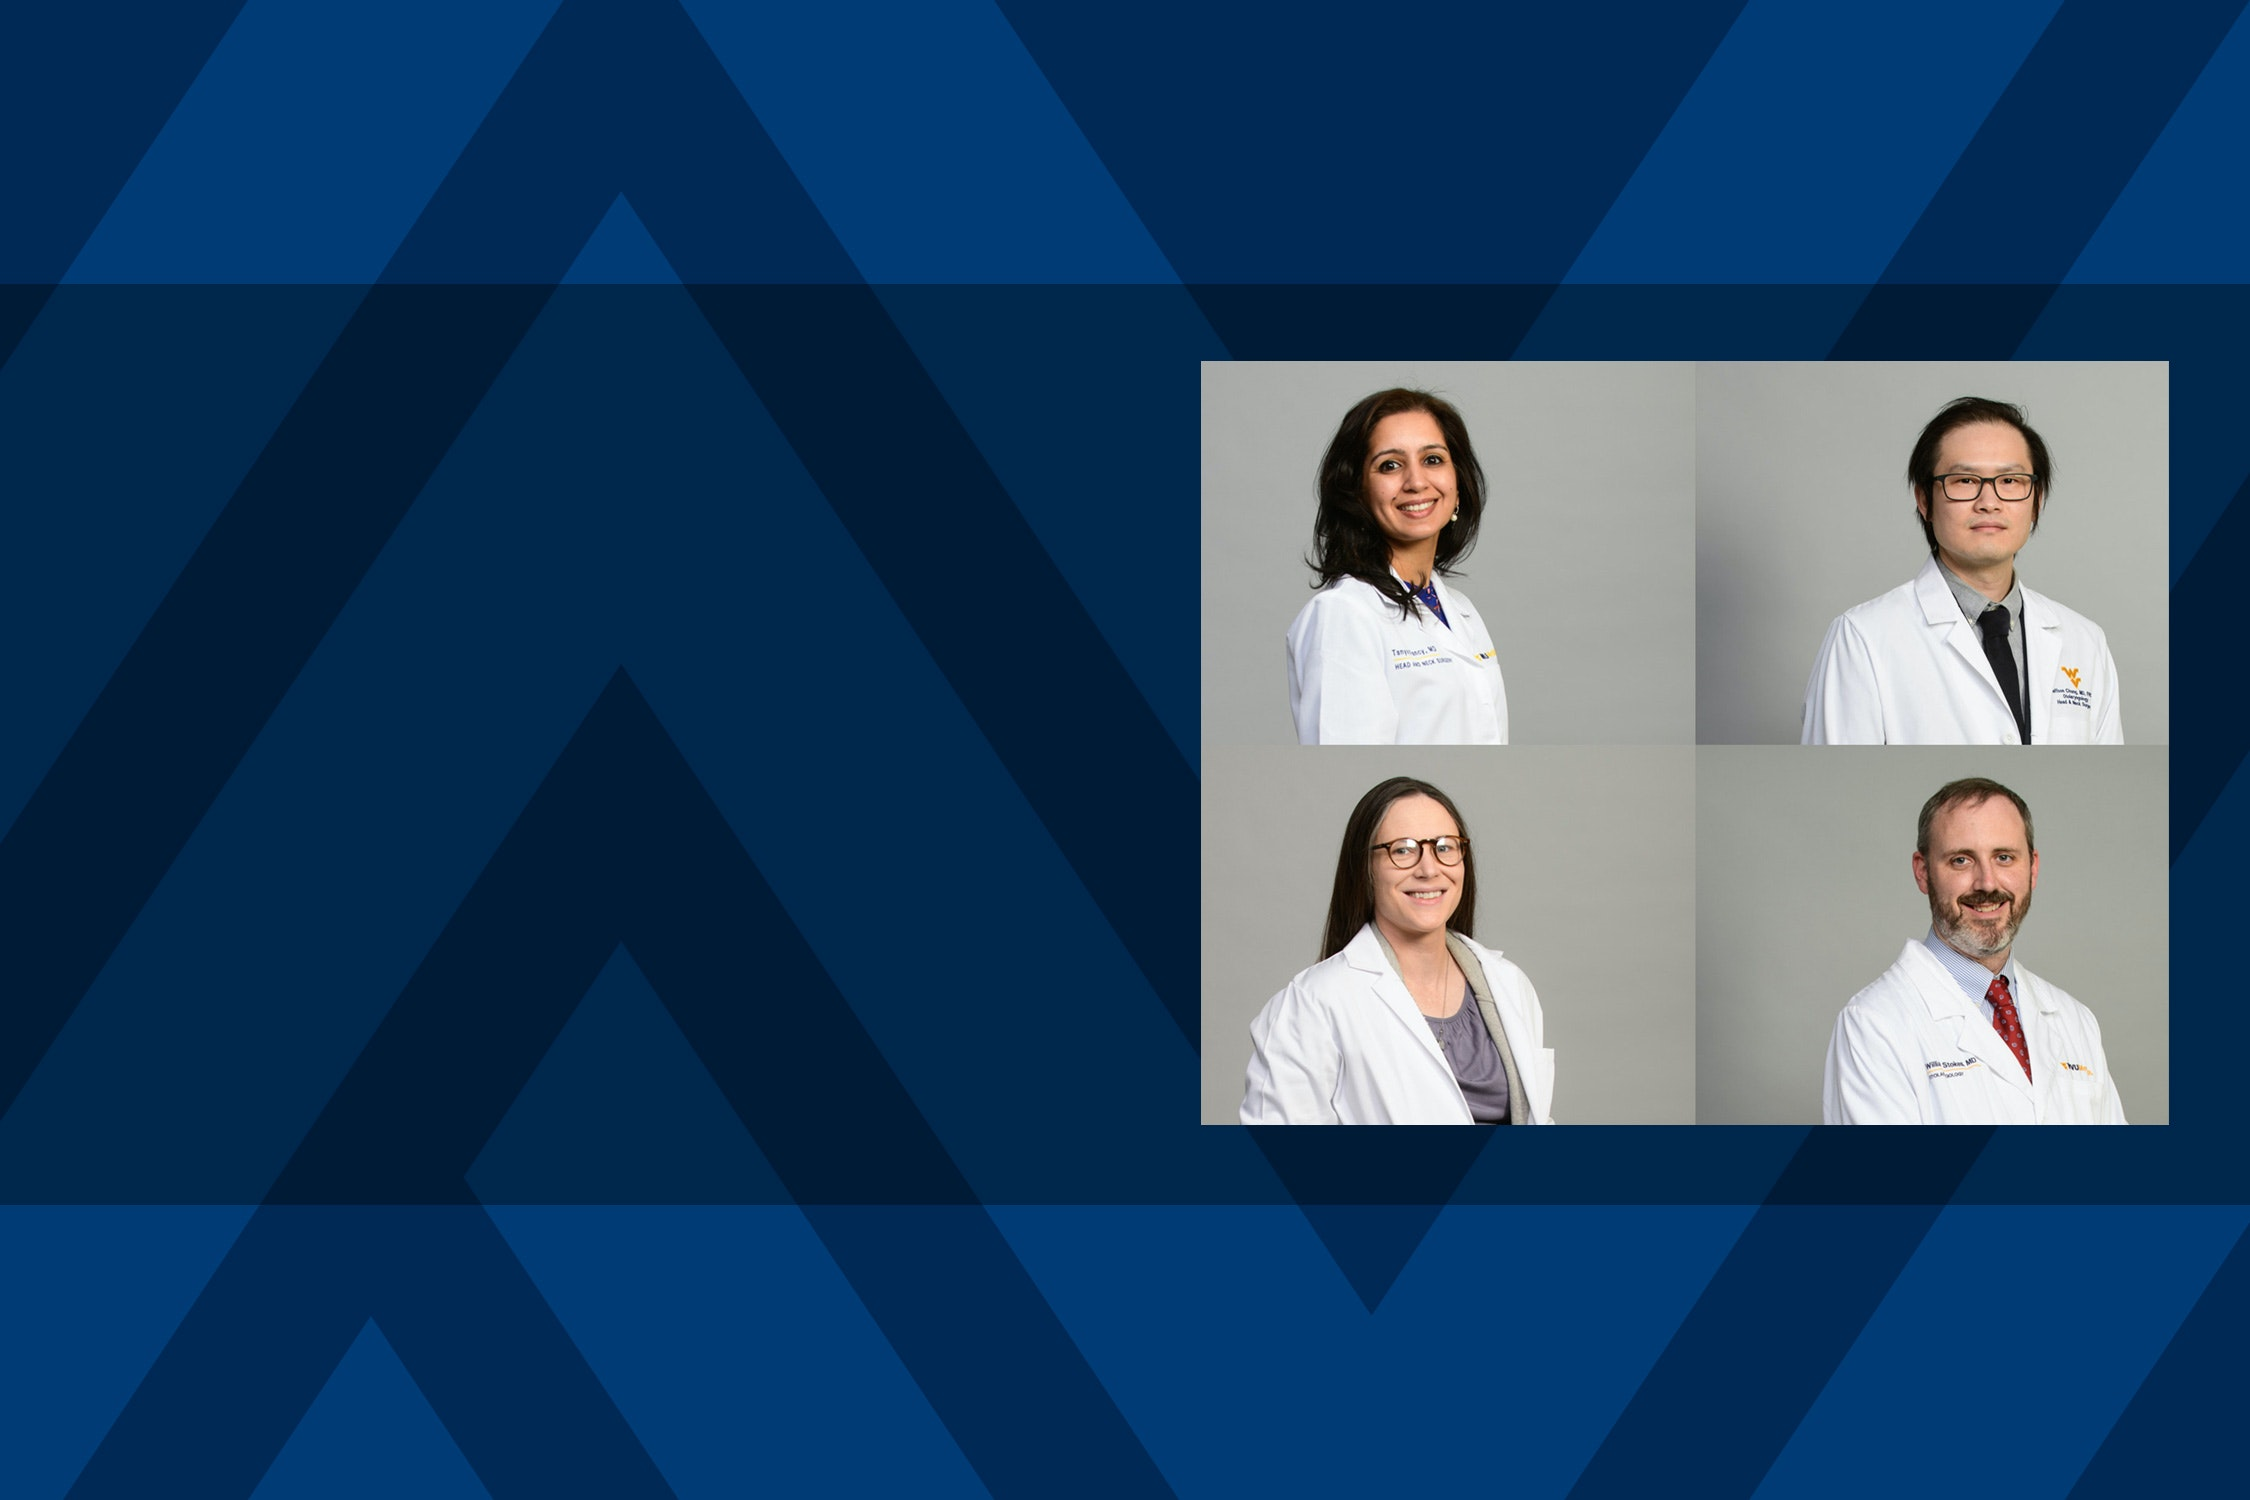 Head and Neck Cancer Surgery's team